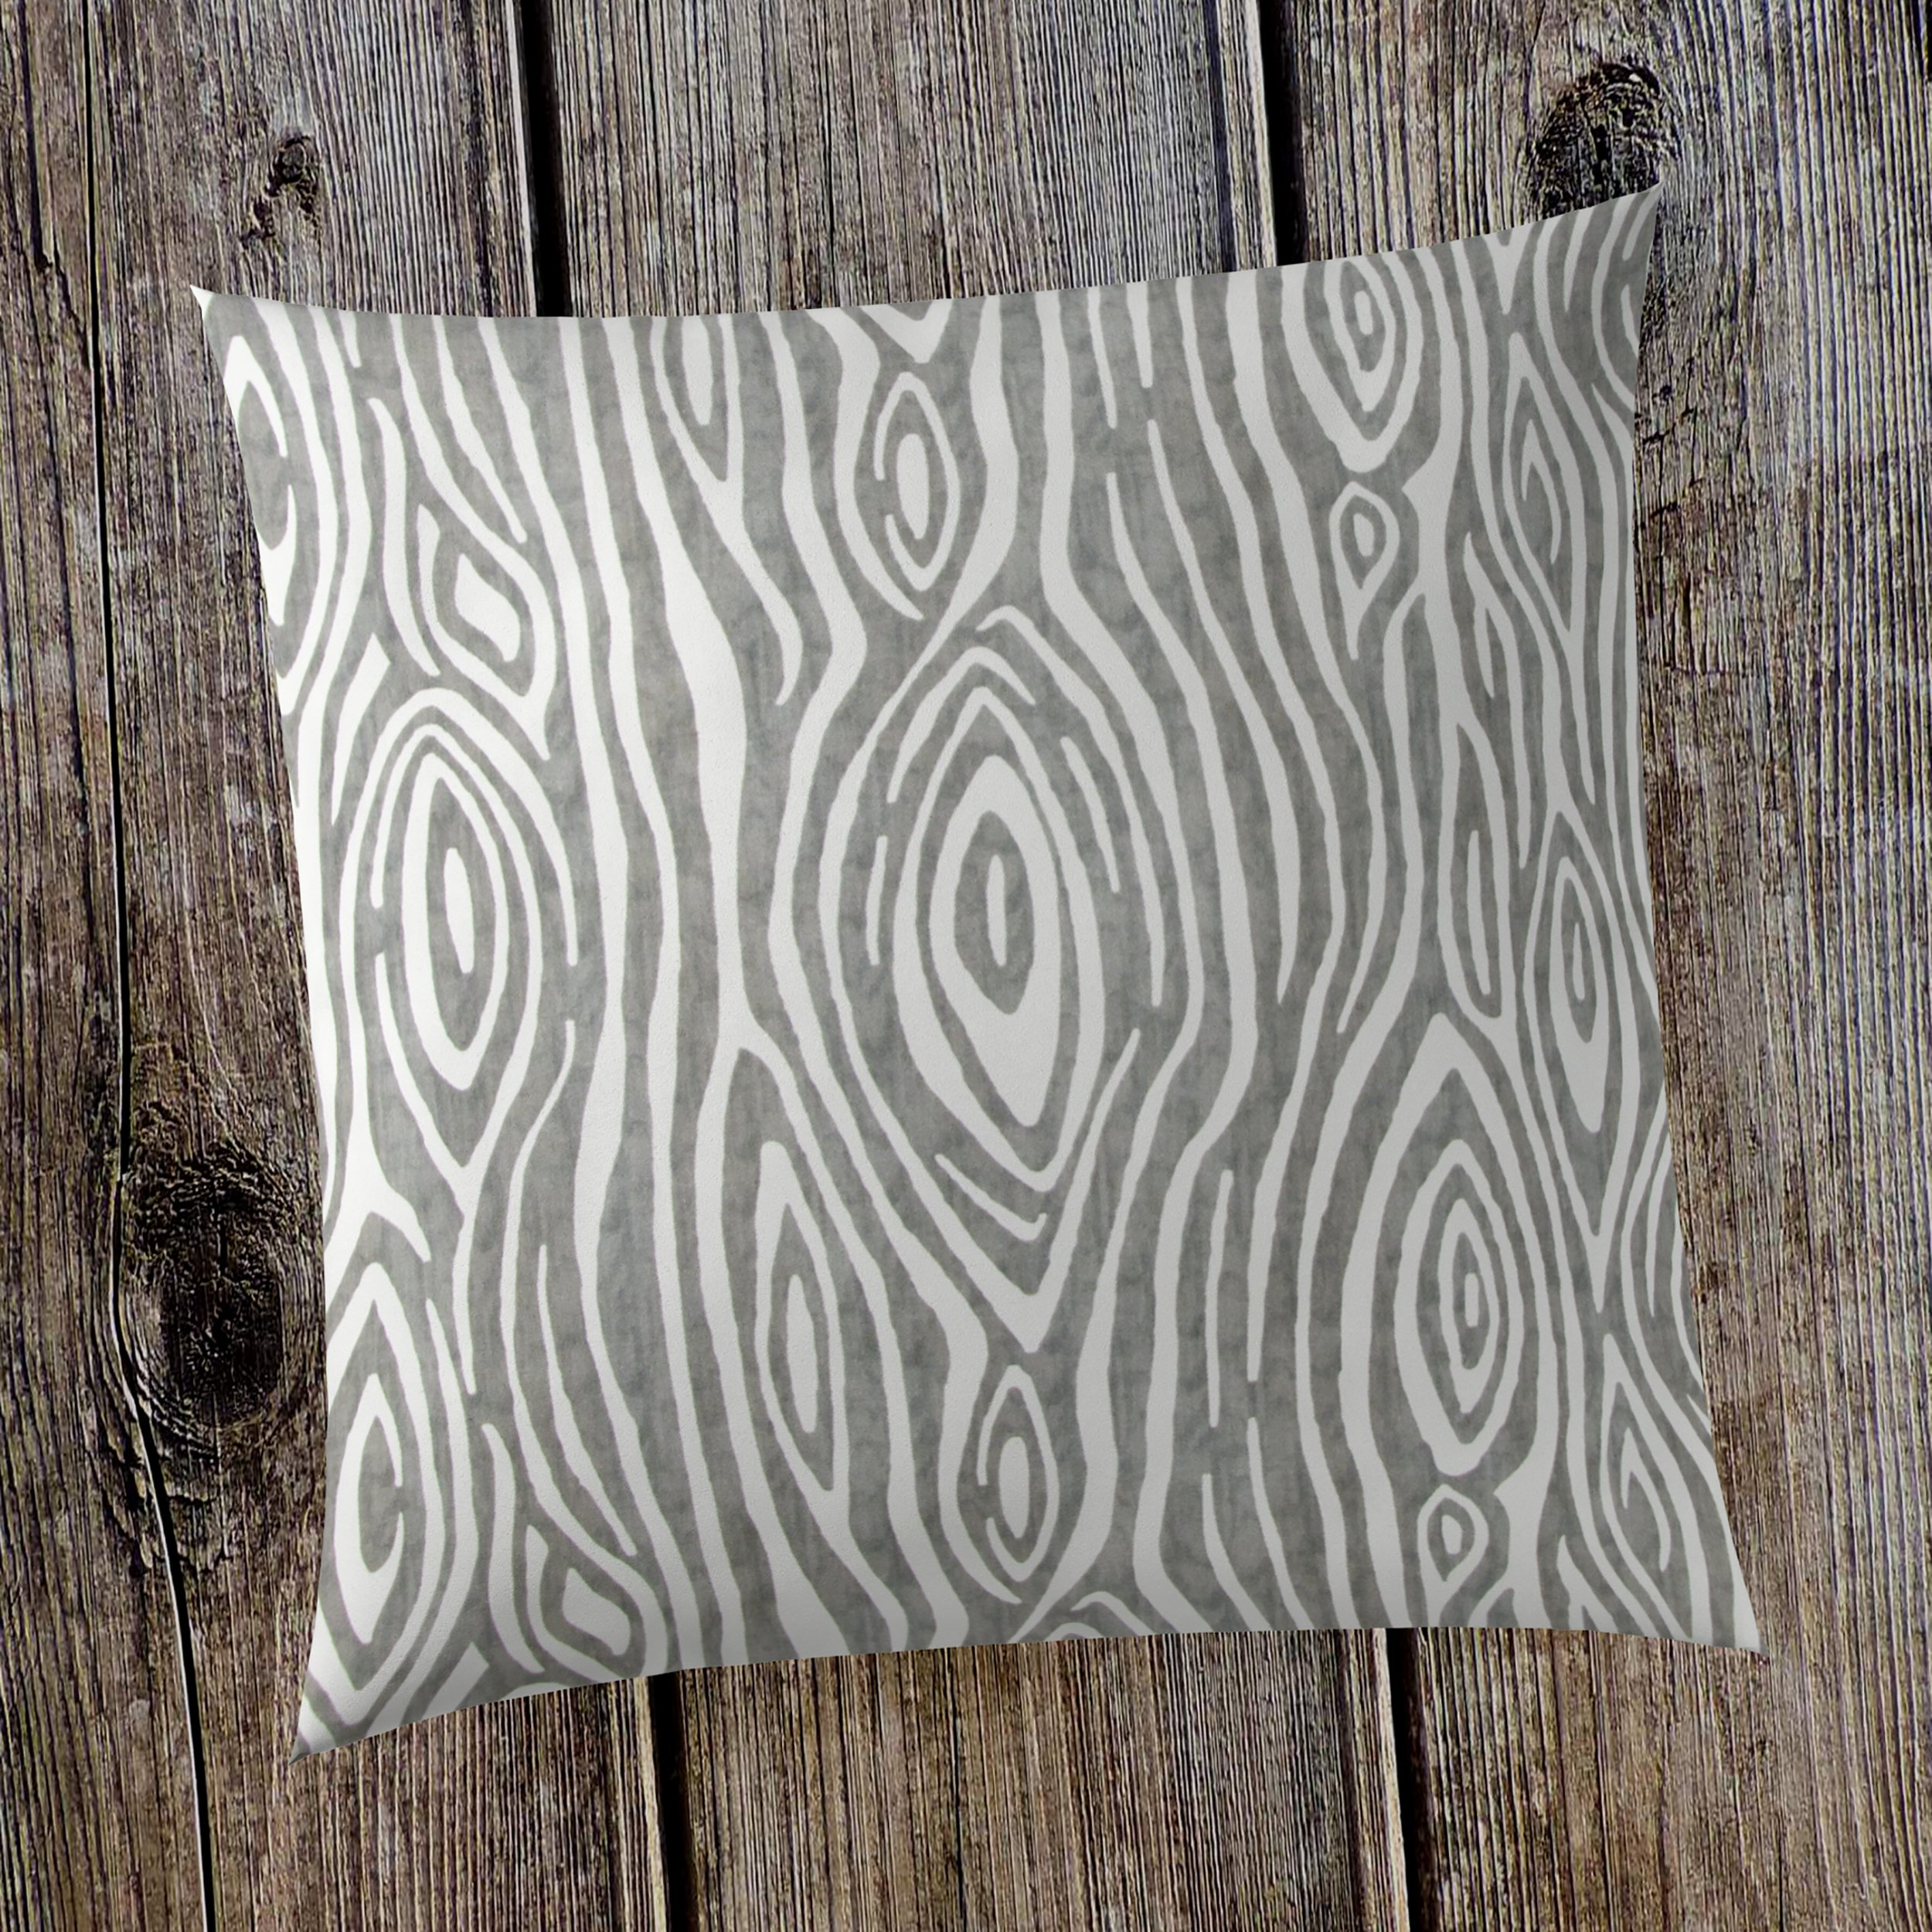 Glenna Jean Tree Trunk 18''x 18'' Pillow with Fill for Baby Nursery, Decorative Soft Cushion Square by Glenna Jean (Image #3)